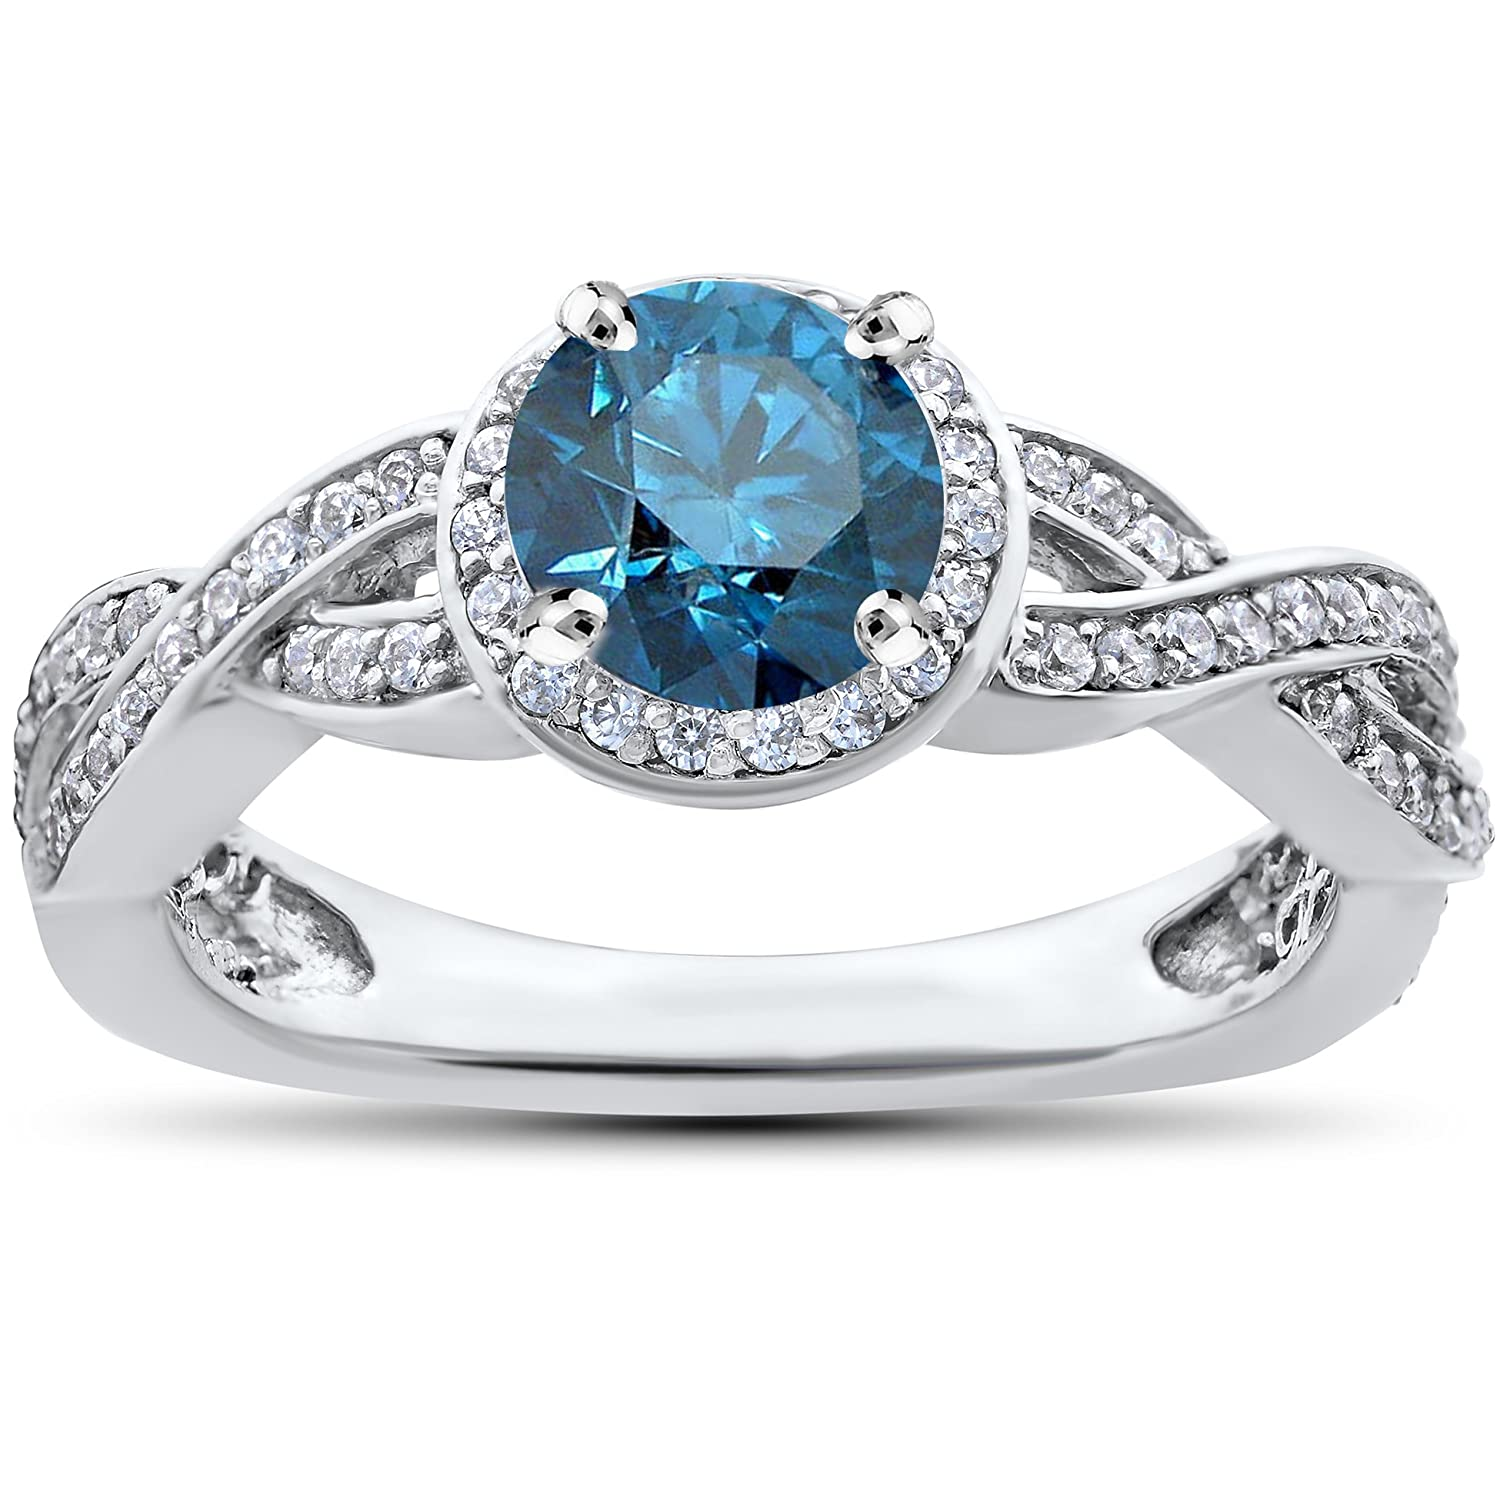 3 4ct pave halo blue diamond engagement ring 14k white gold